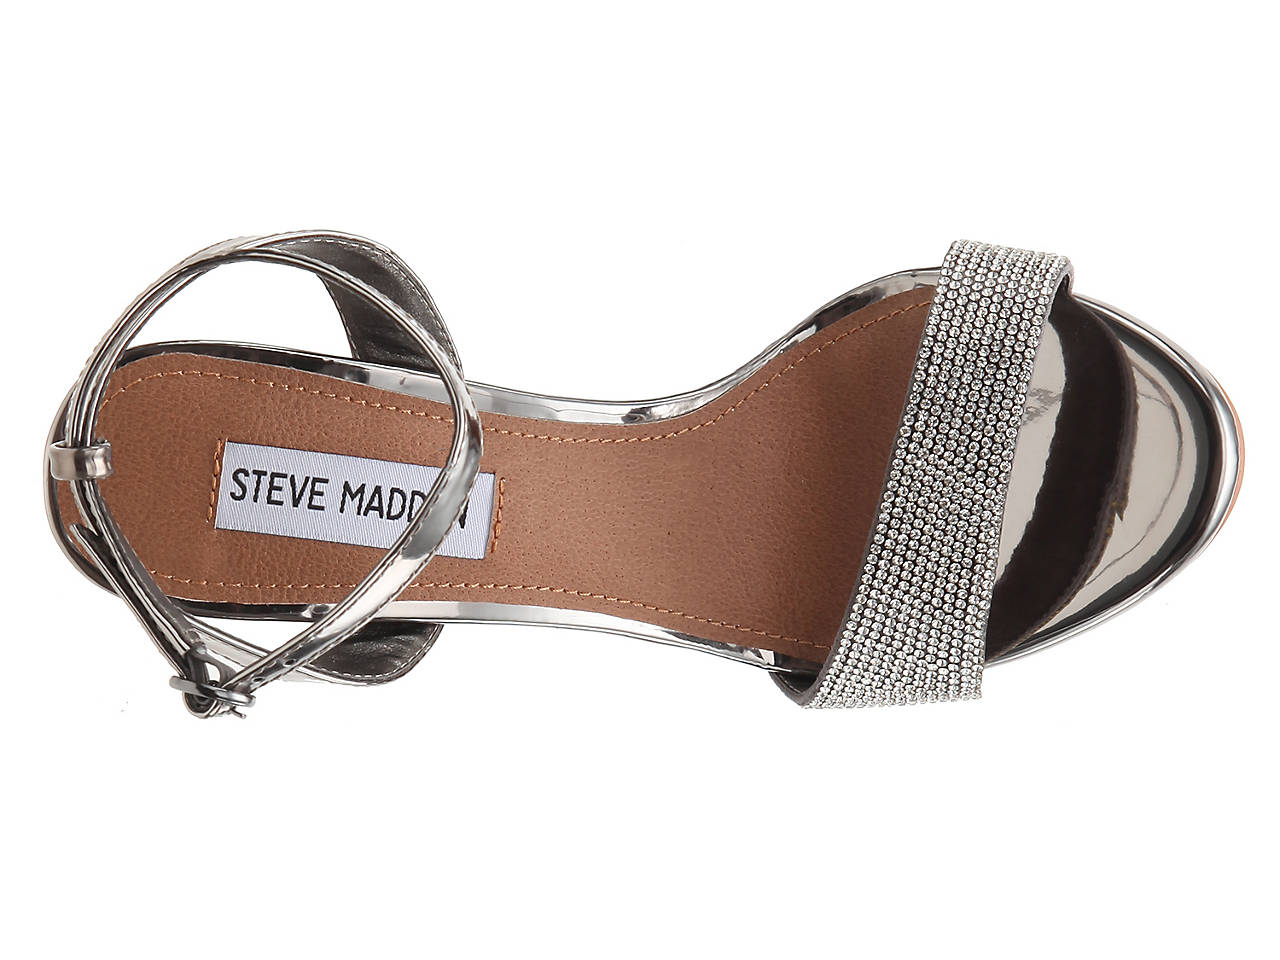 be2d9e1ea4c Steve Madden Ritter Sandal Women s Shoes